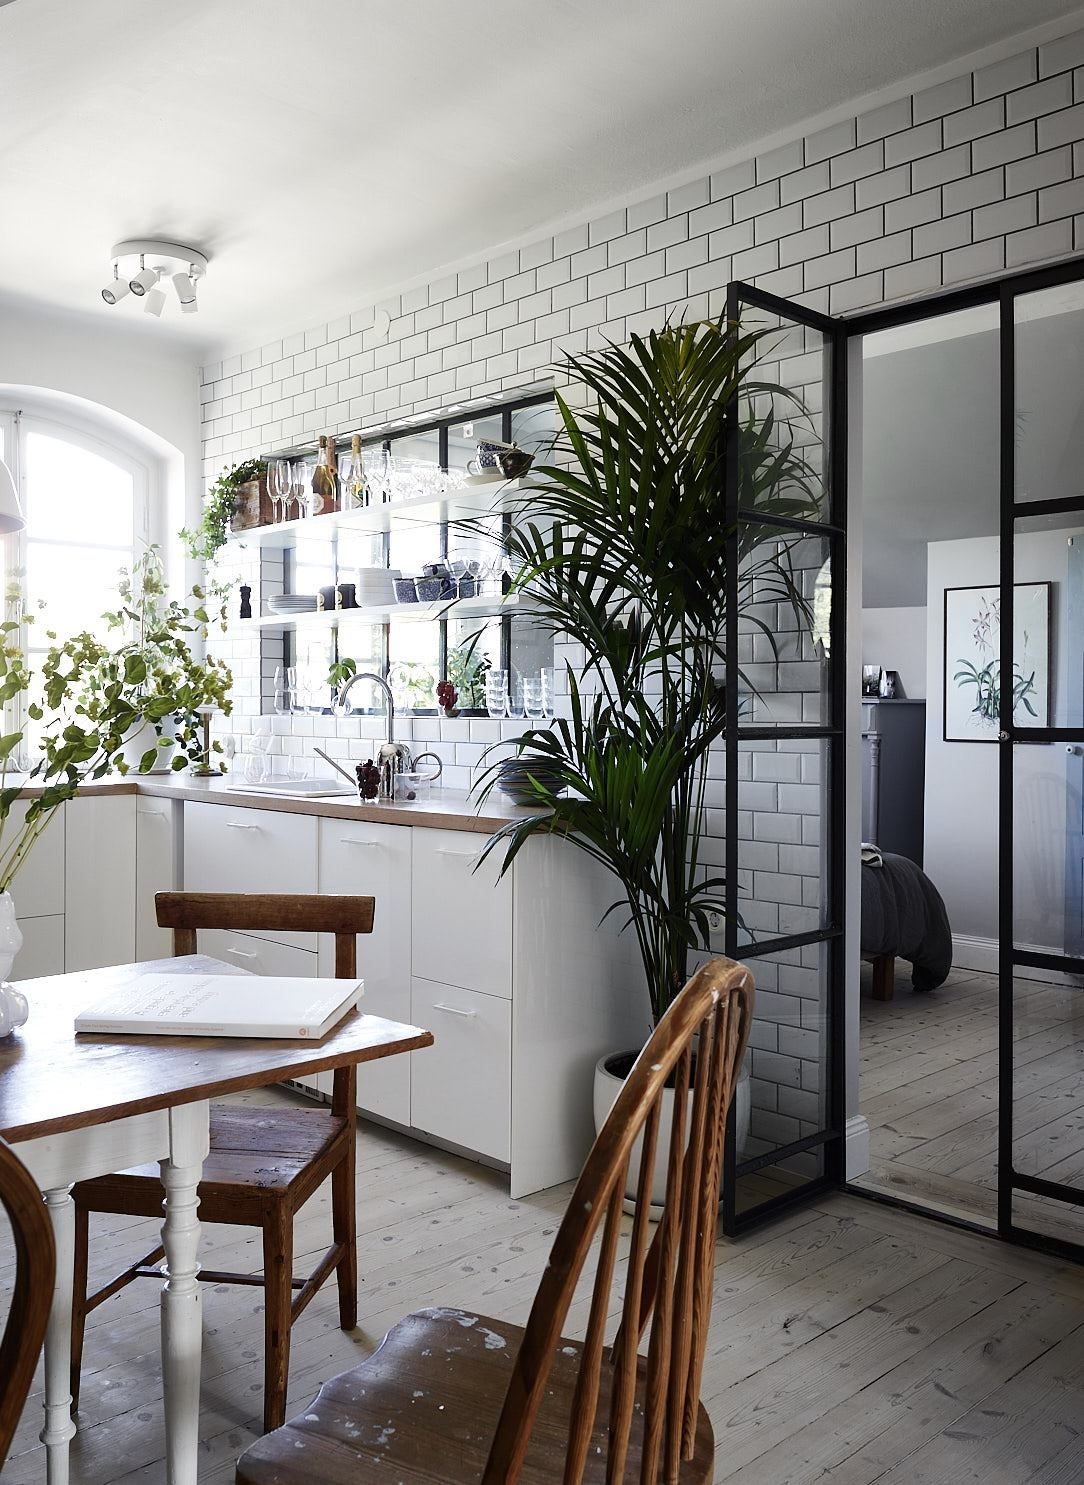 Pin by ez v on stuff pinterest glass partition glass and kitchens